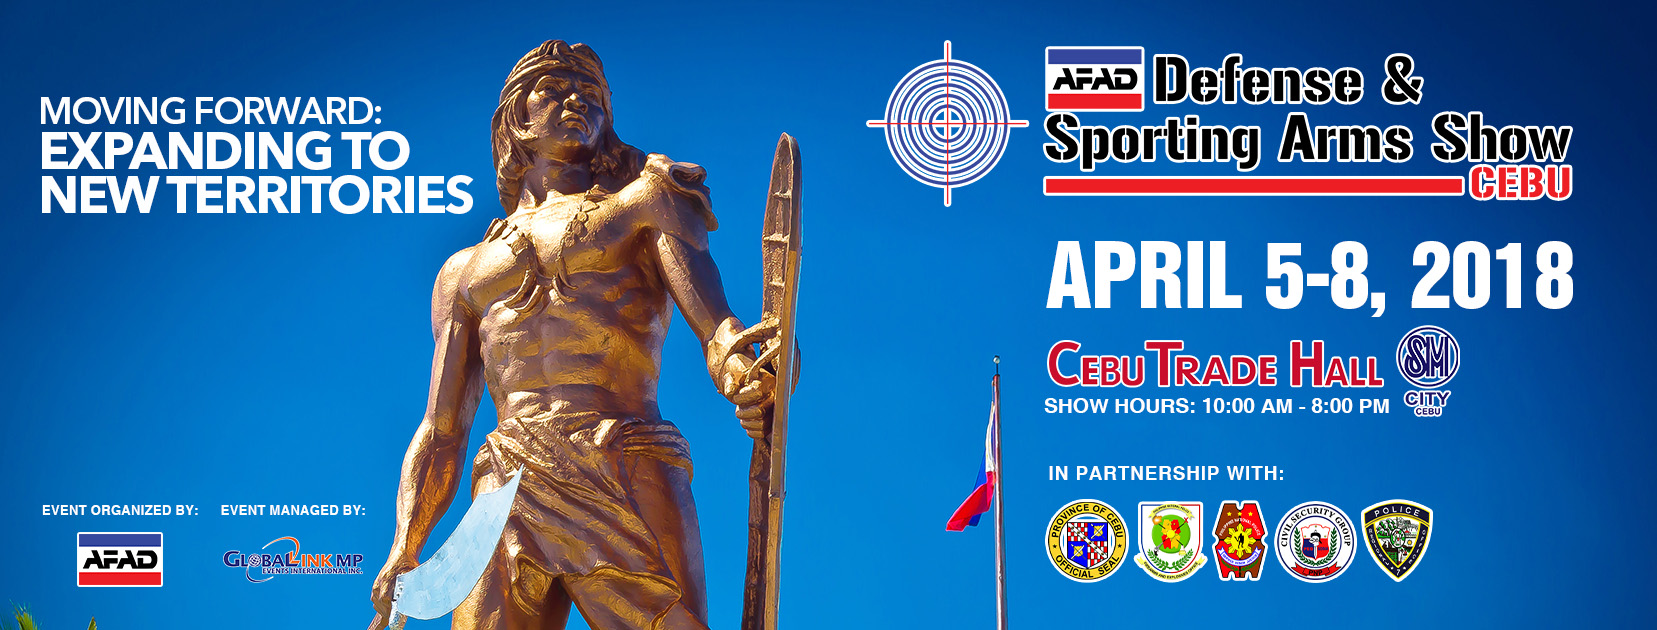 Expanding to new territories: AFAD Defense & Sporting Arms Show Cebu